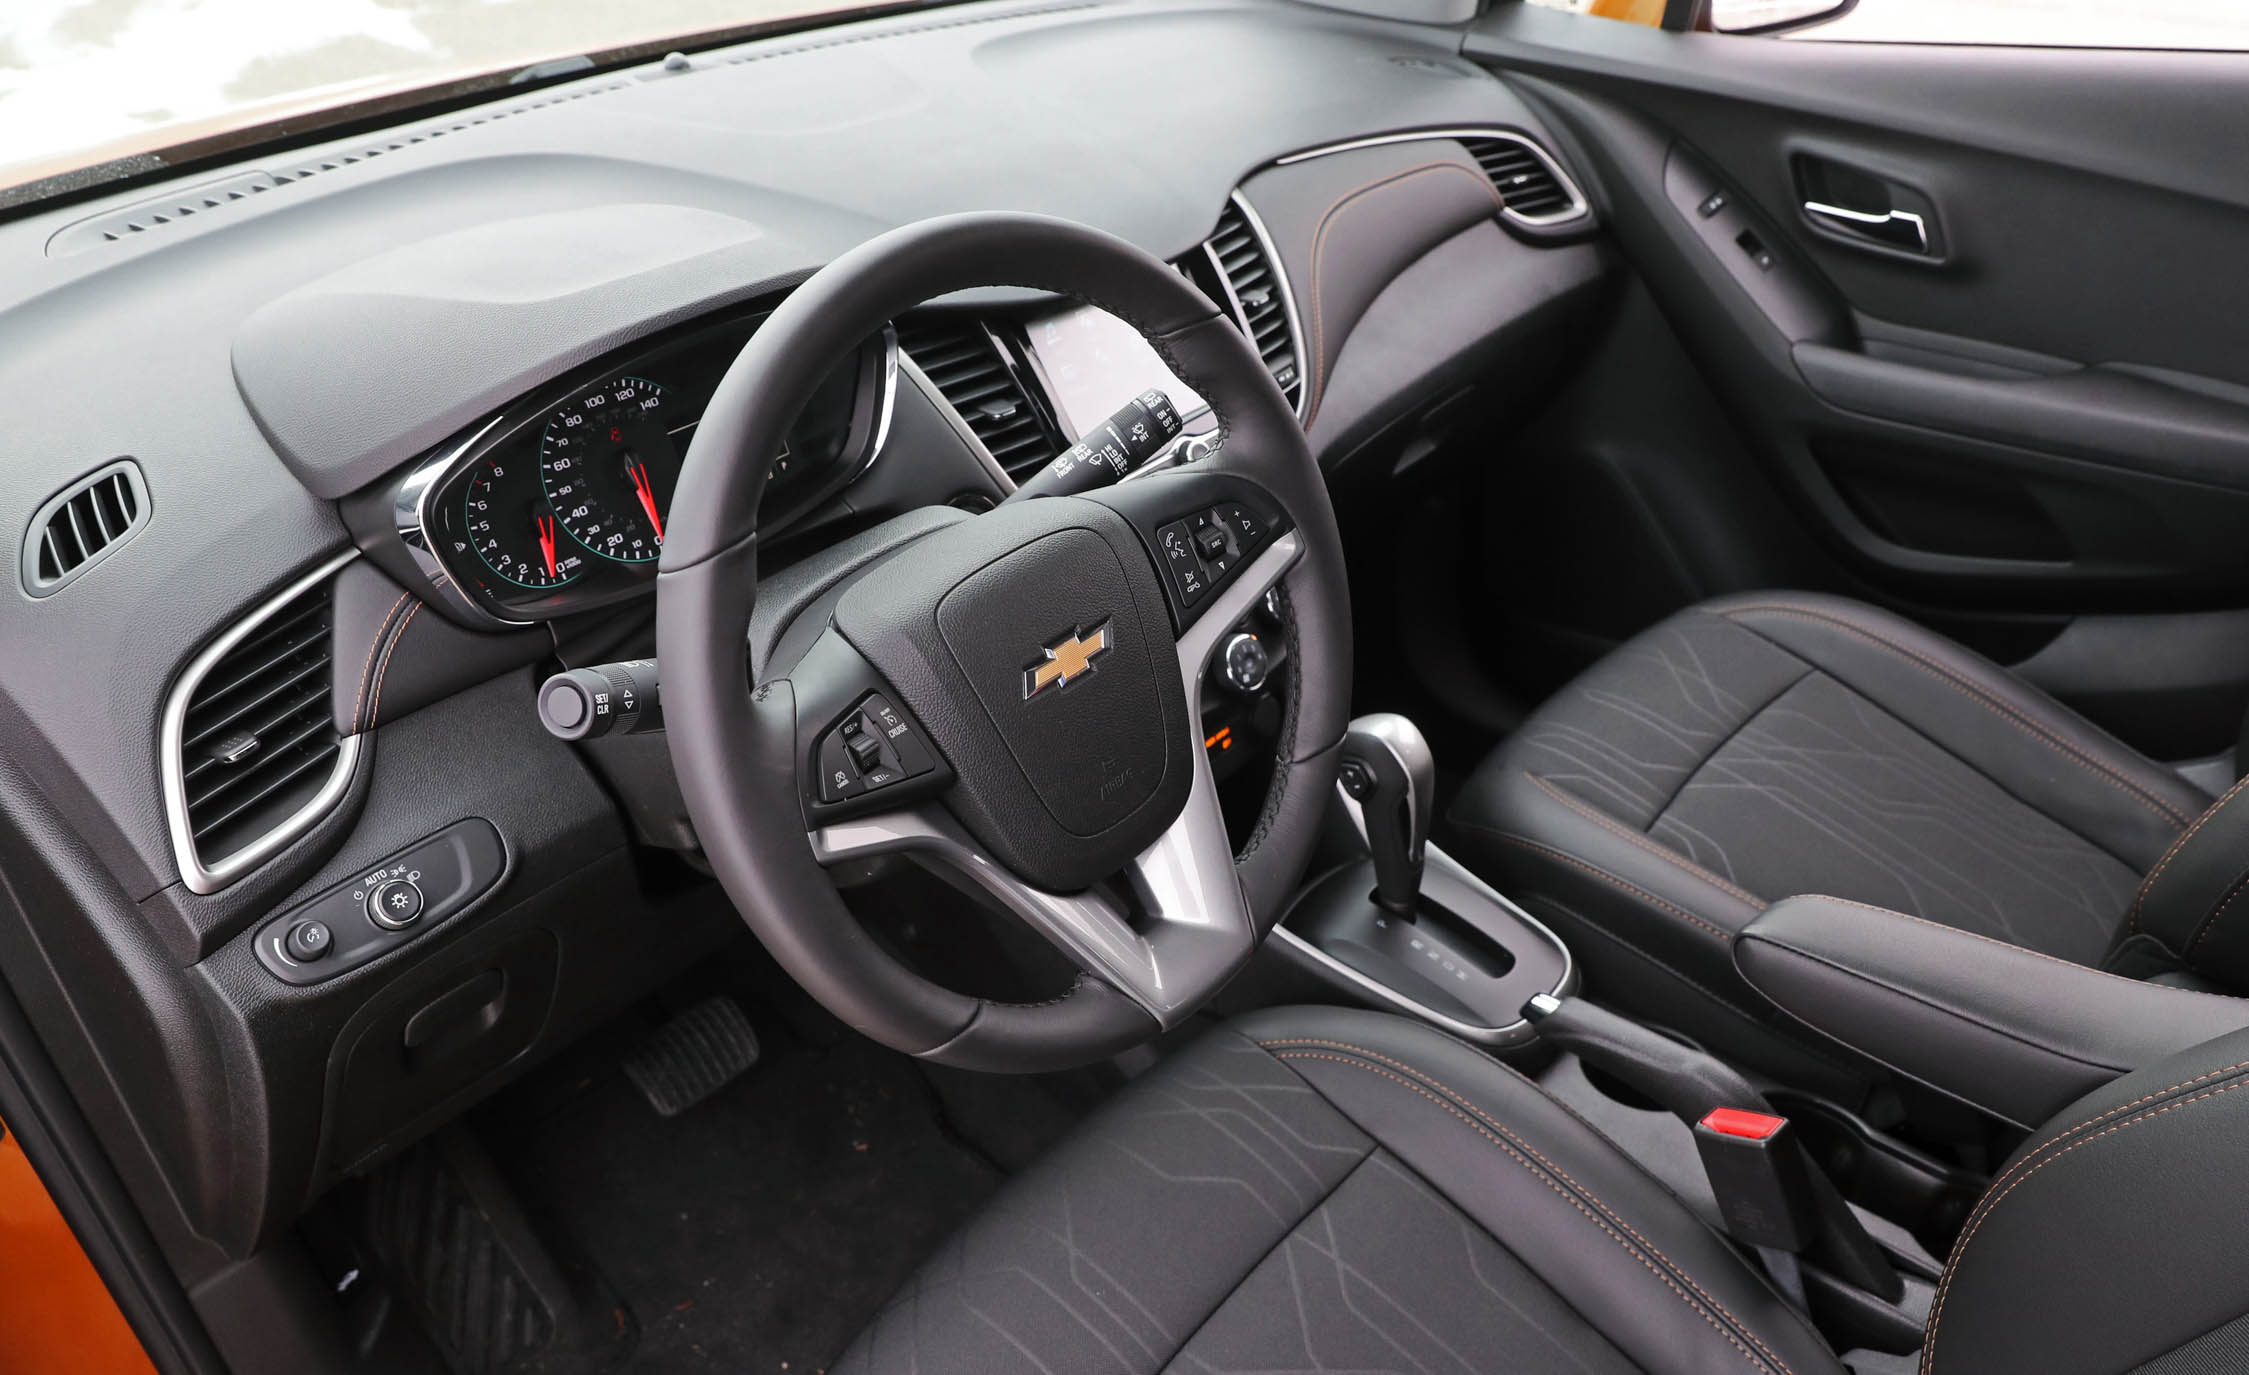 2017 Chevrolet Trax Interior Cockpit Steering (View 27 of 47)